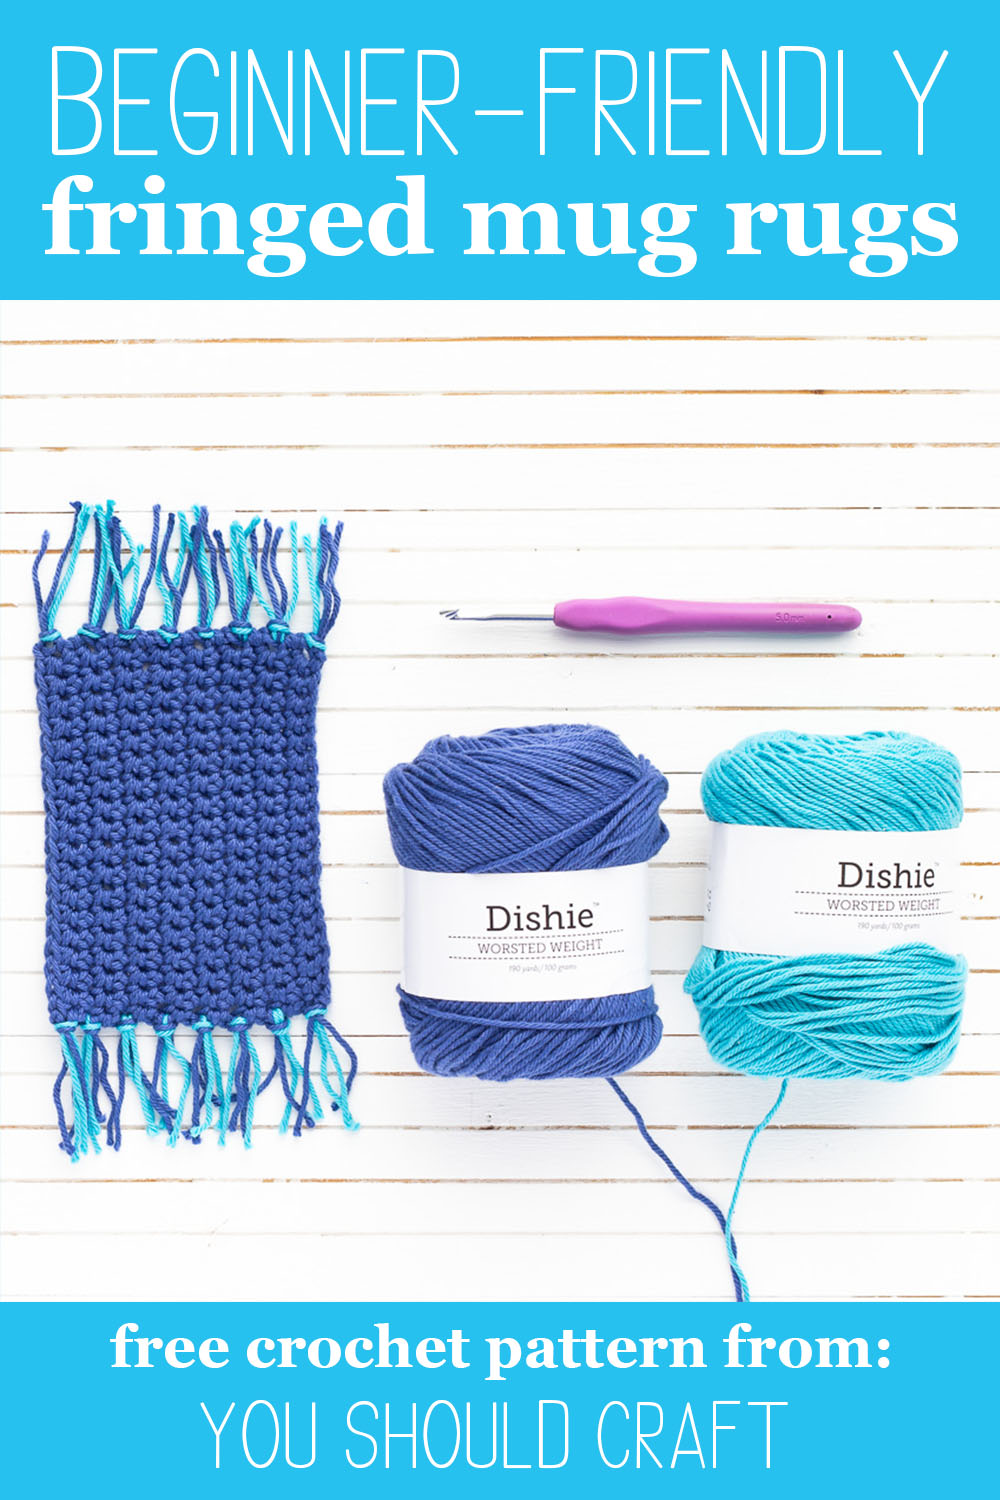 "two balls of blue yarn, a fringed mug rug, and a purple crochet hook with text overlay ""beginner friendly fringed mug rugs - free crochet pattern from: you should craft"""